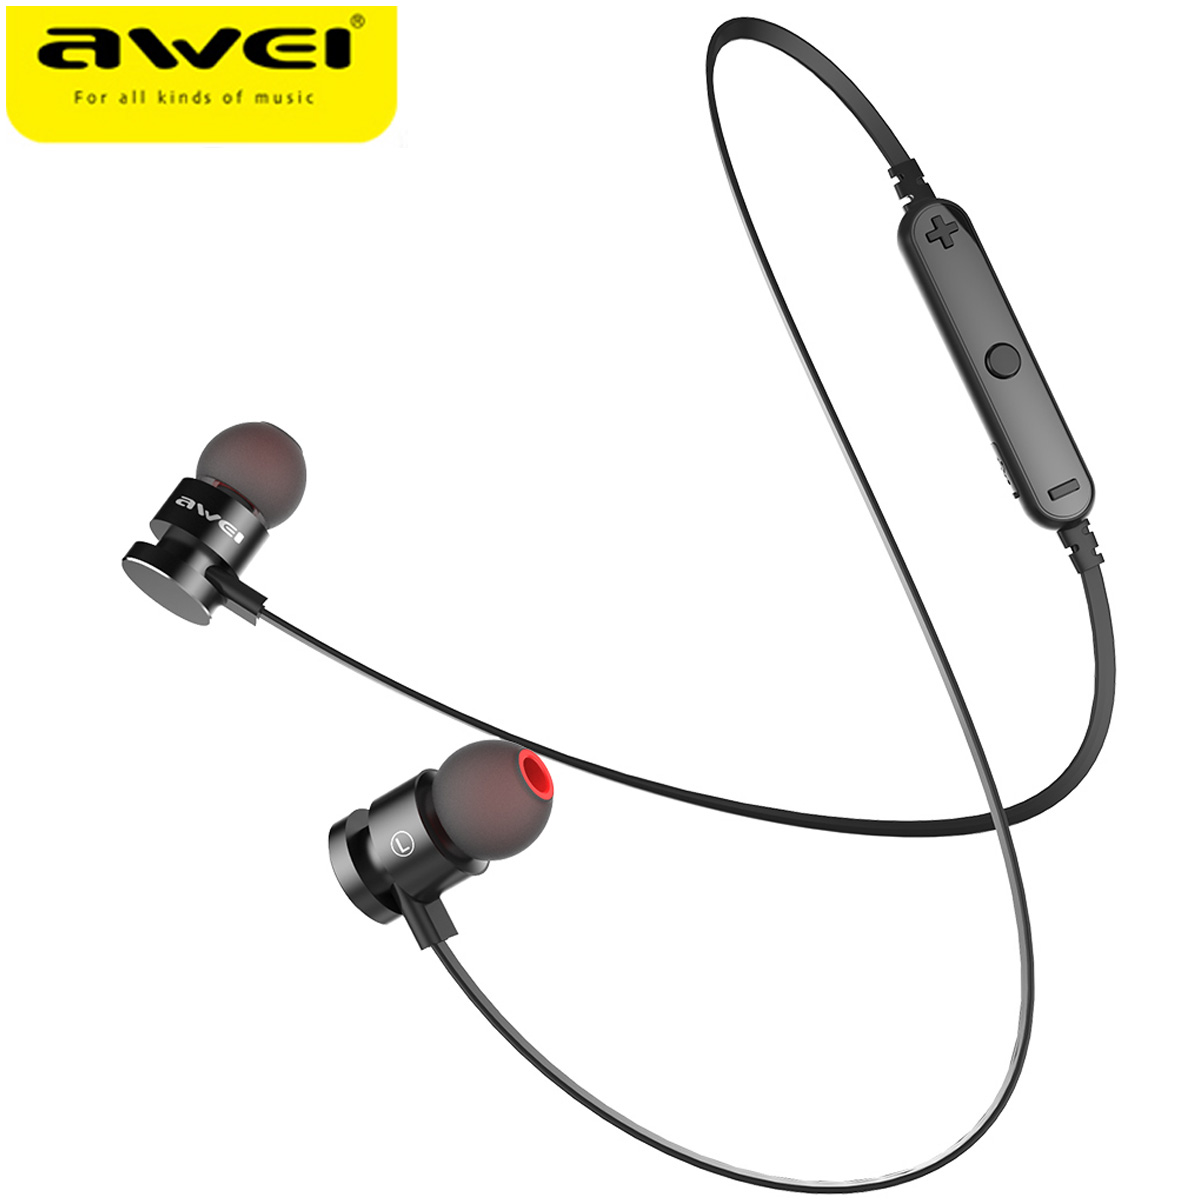 AWEI T11 Bluetooth Earphone Wireless Headphones For Phone Cordless Headset With Magnetic Earpiece Earbuds Auriculares Casque wireless bluetooth earphone headphones s9 sport earpiece headset with tf card slot 8g auriculares with micro for iphone android